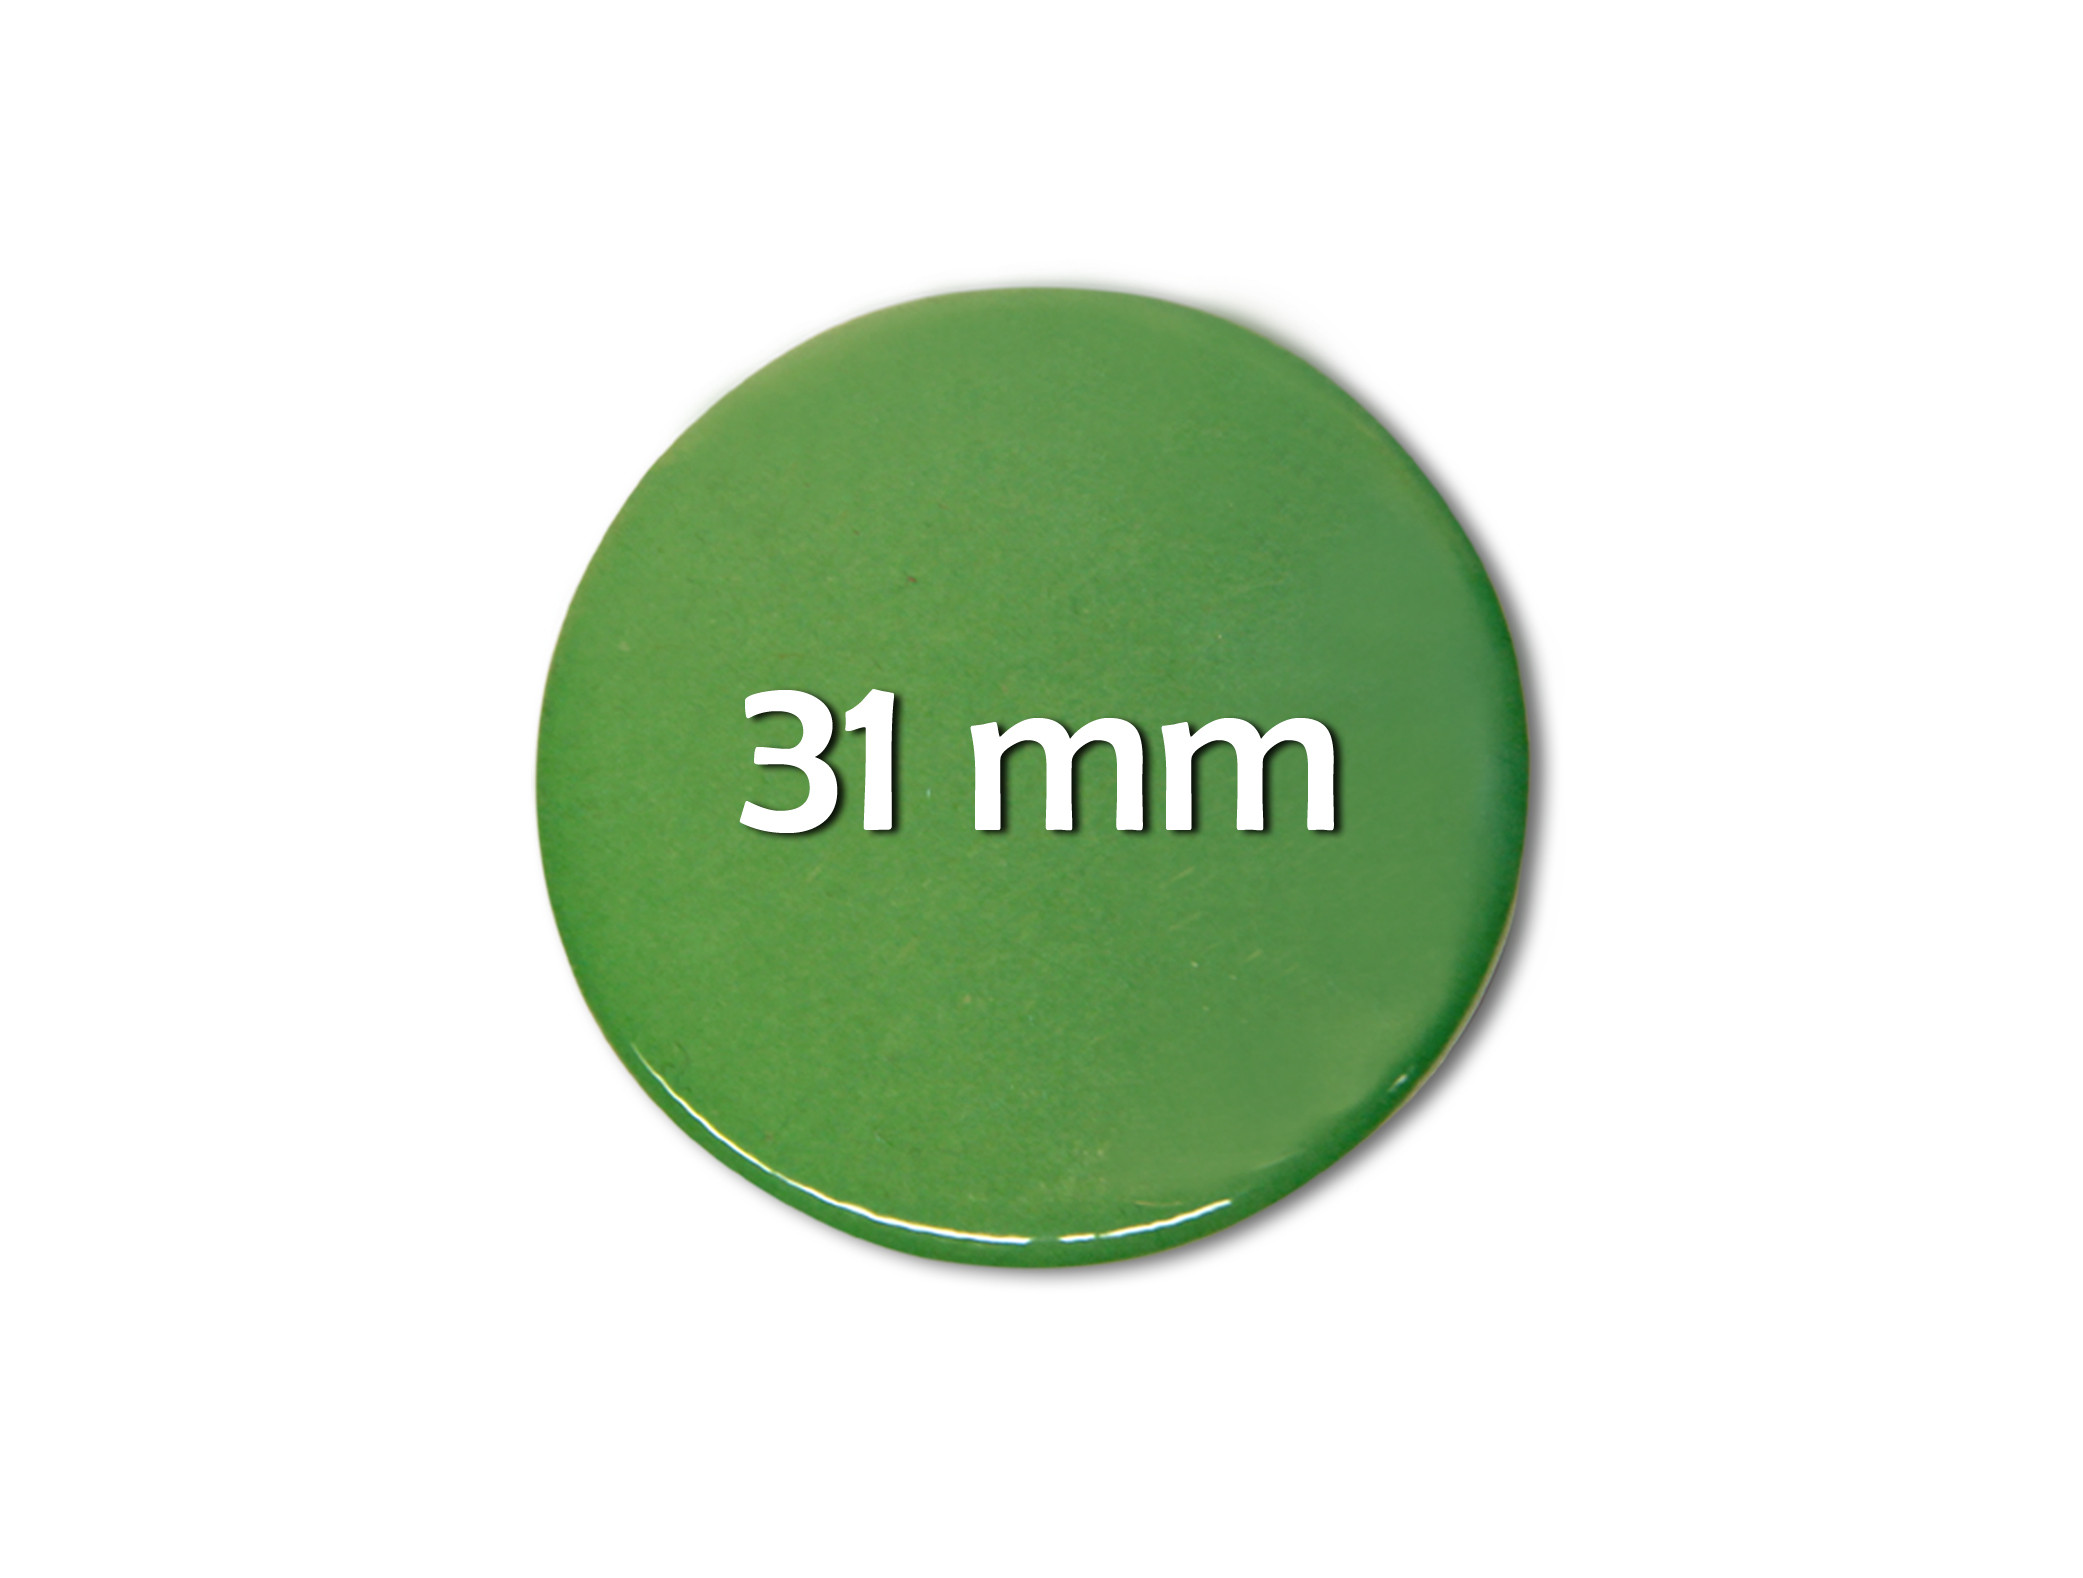 31mm Fertigbutton